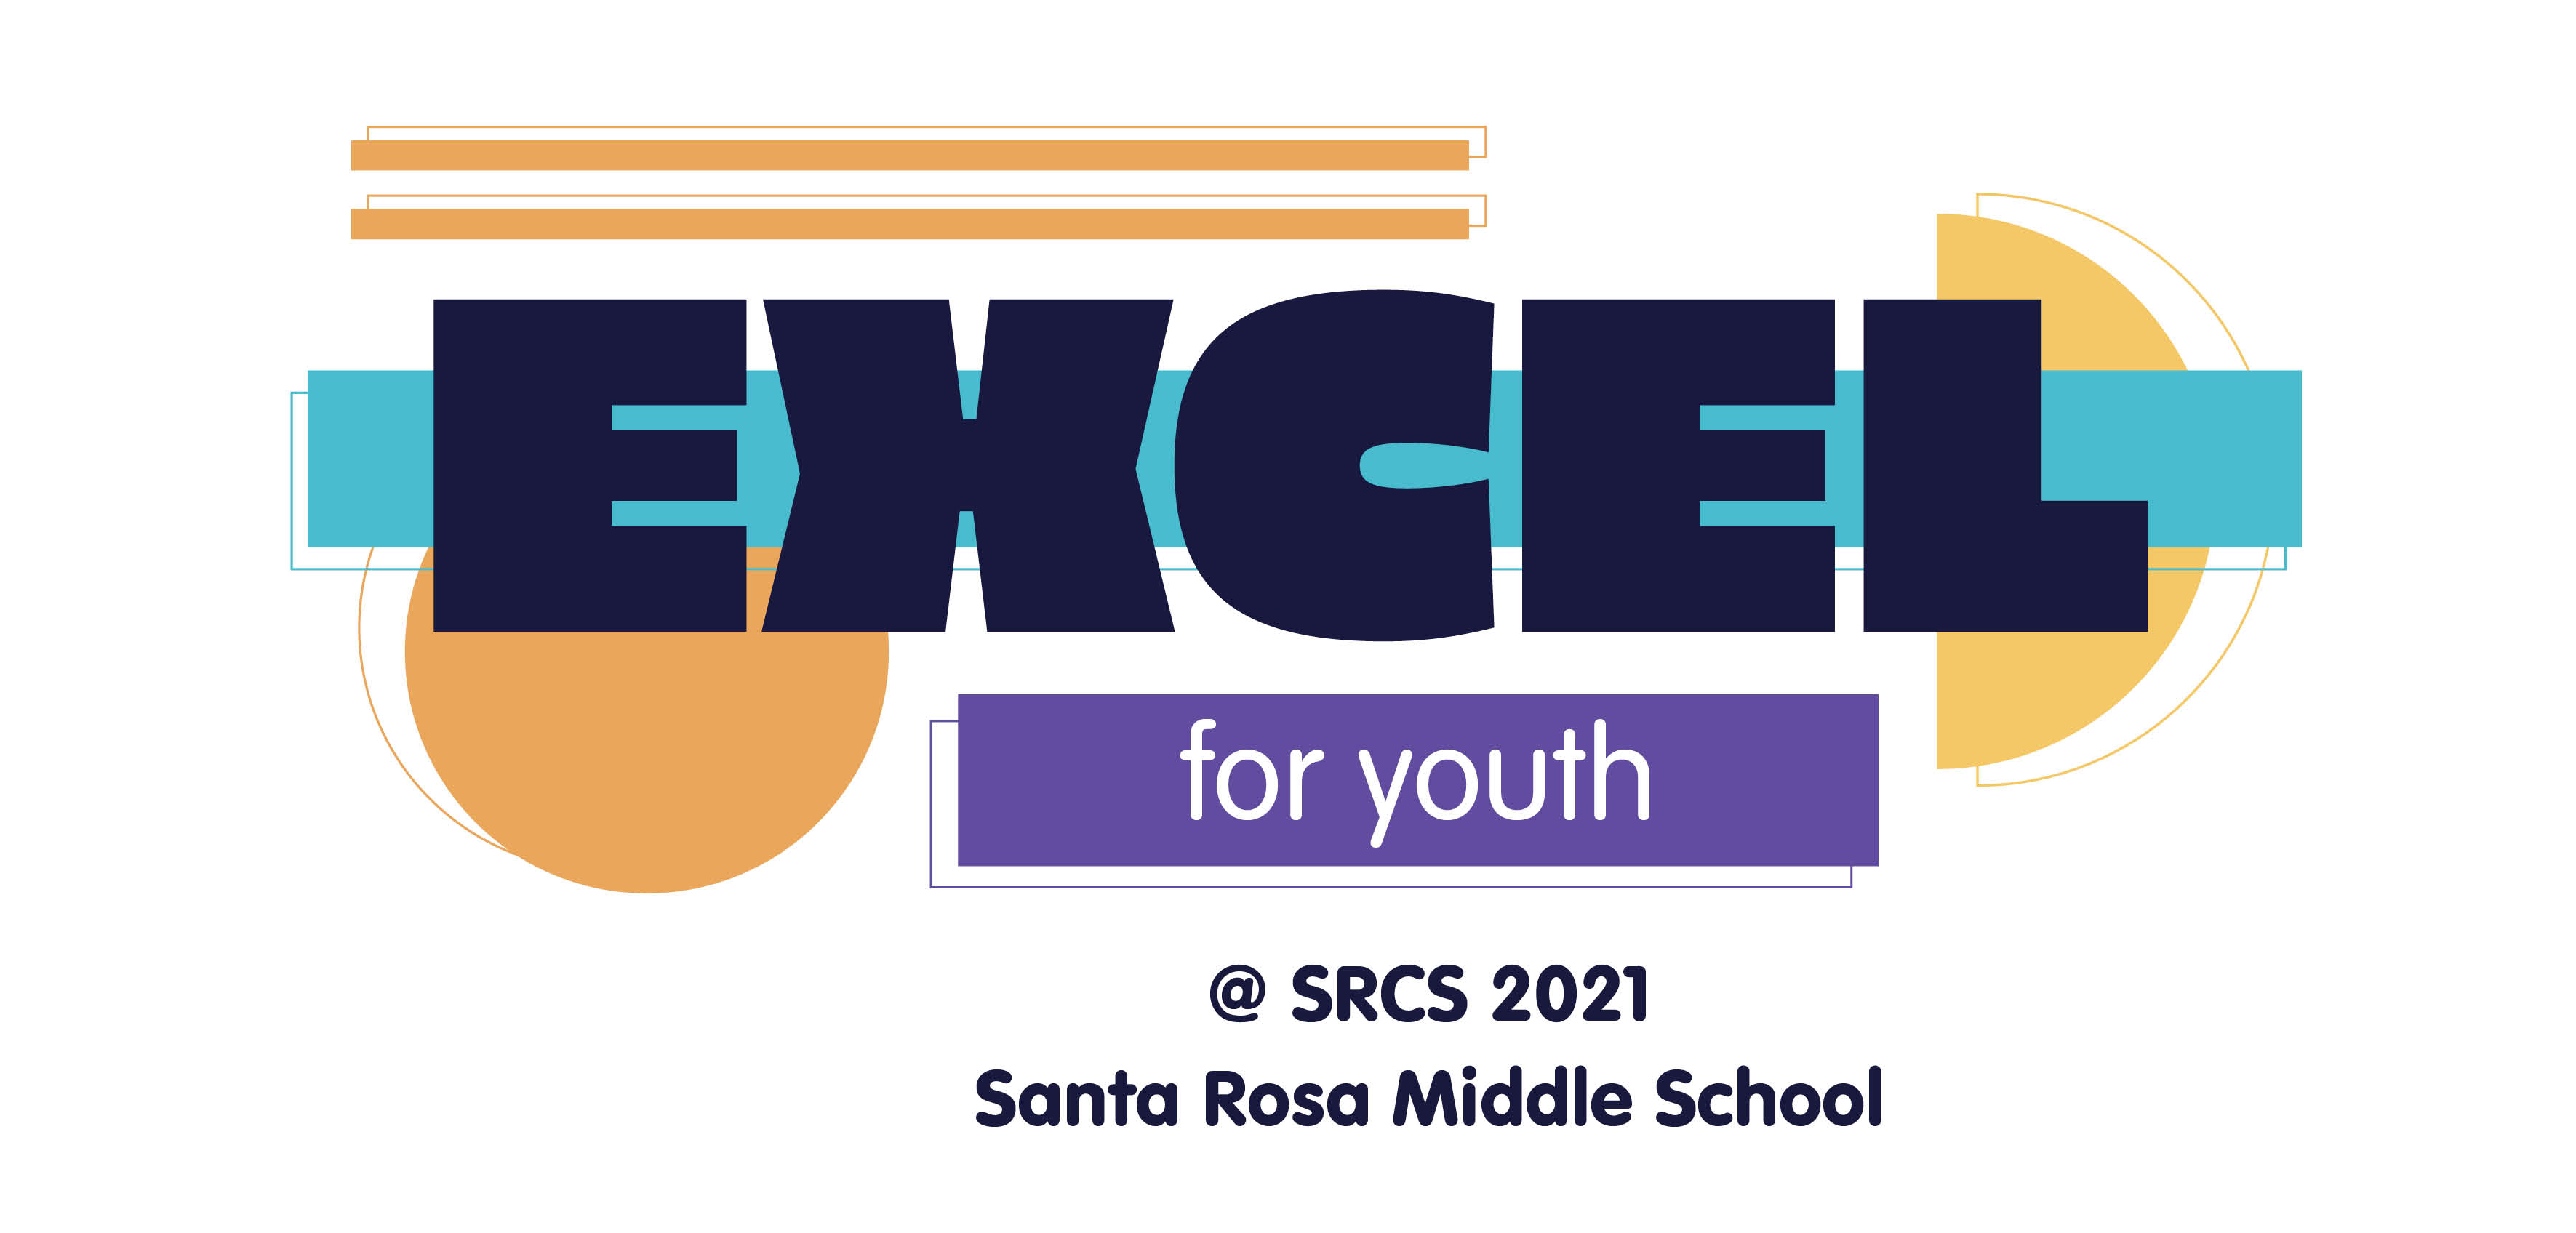 EXCEL for Youth - Santa Rosa Middle School